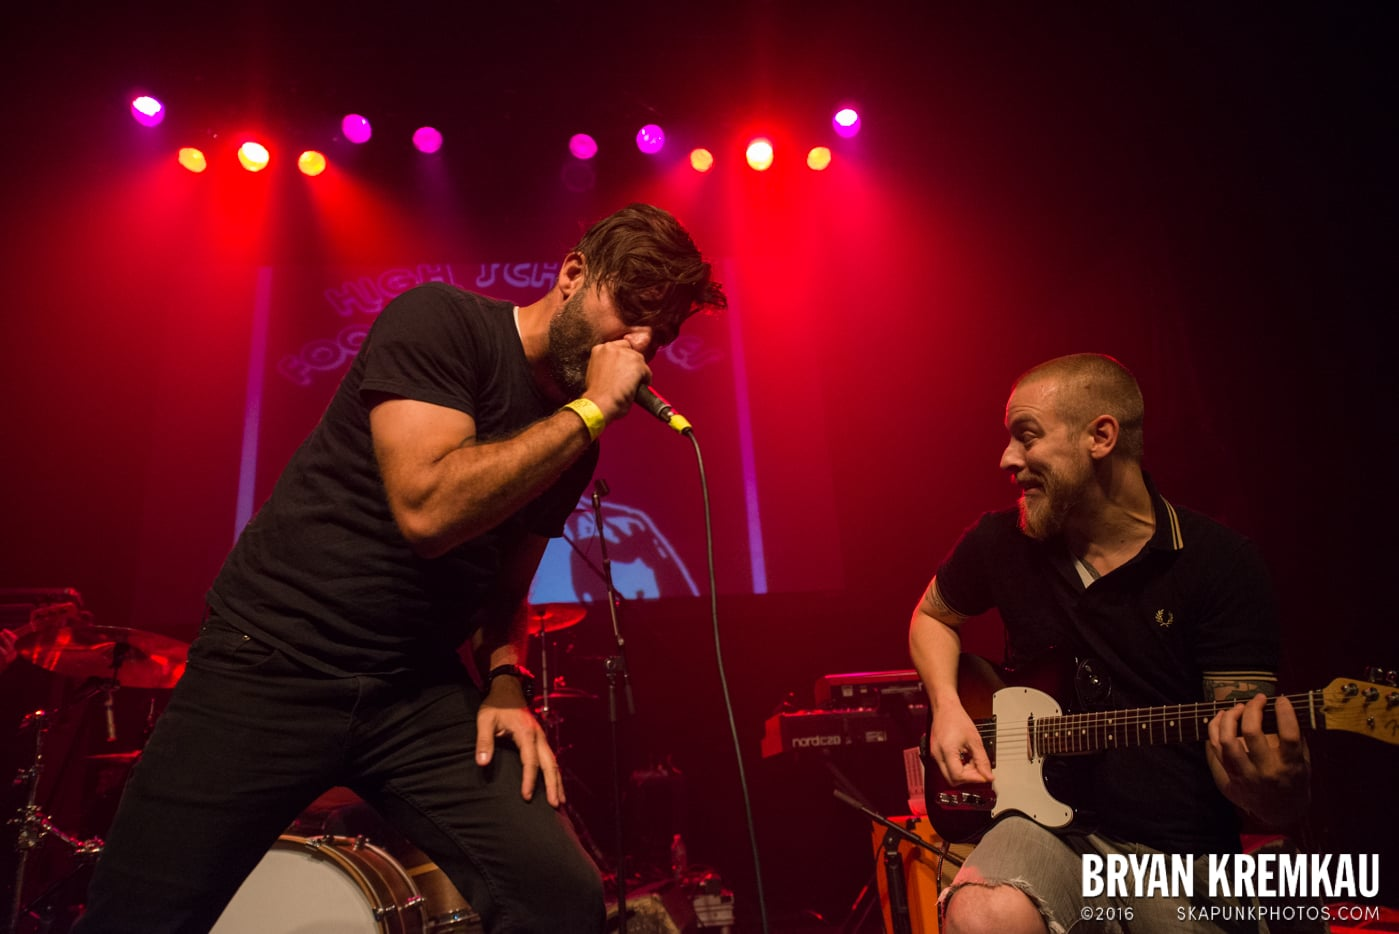 High School Football Heroes @ Gramercy Theatre, NYC - 10.6.16 (14)